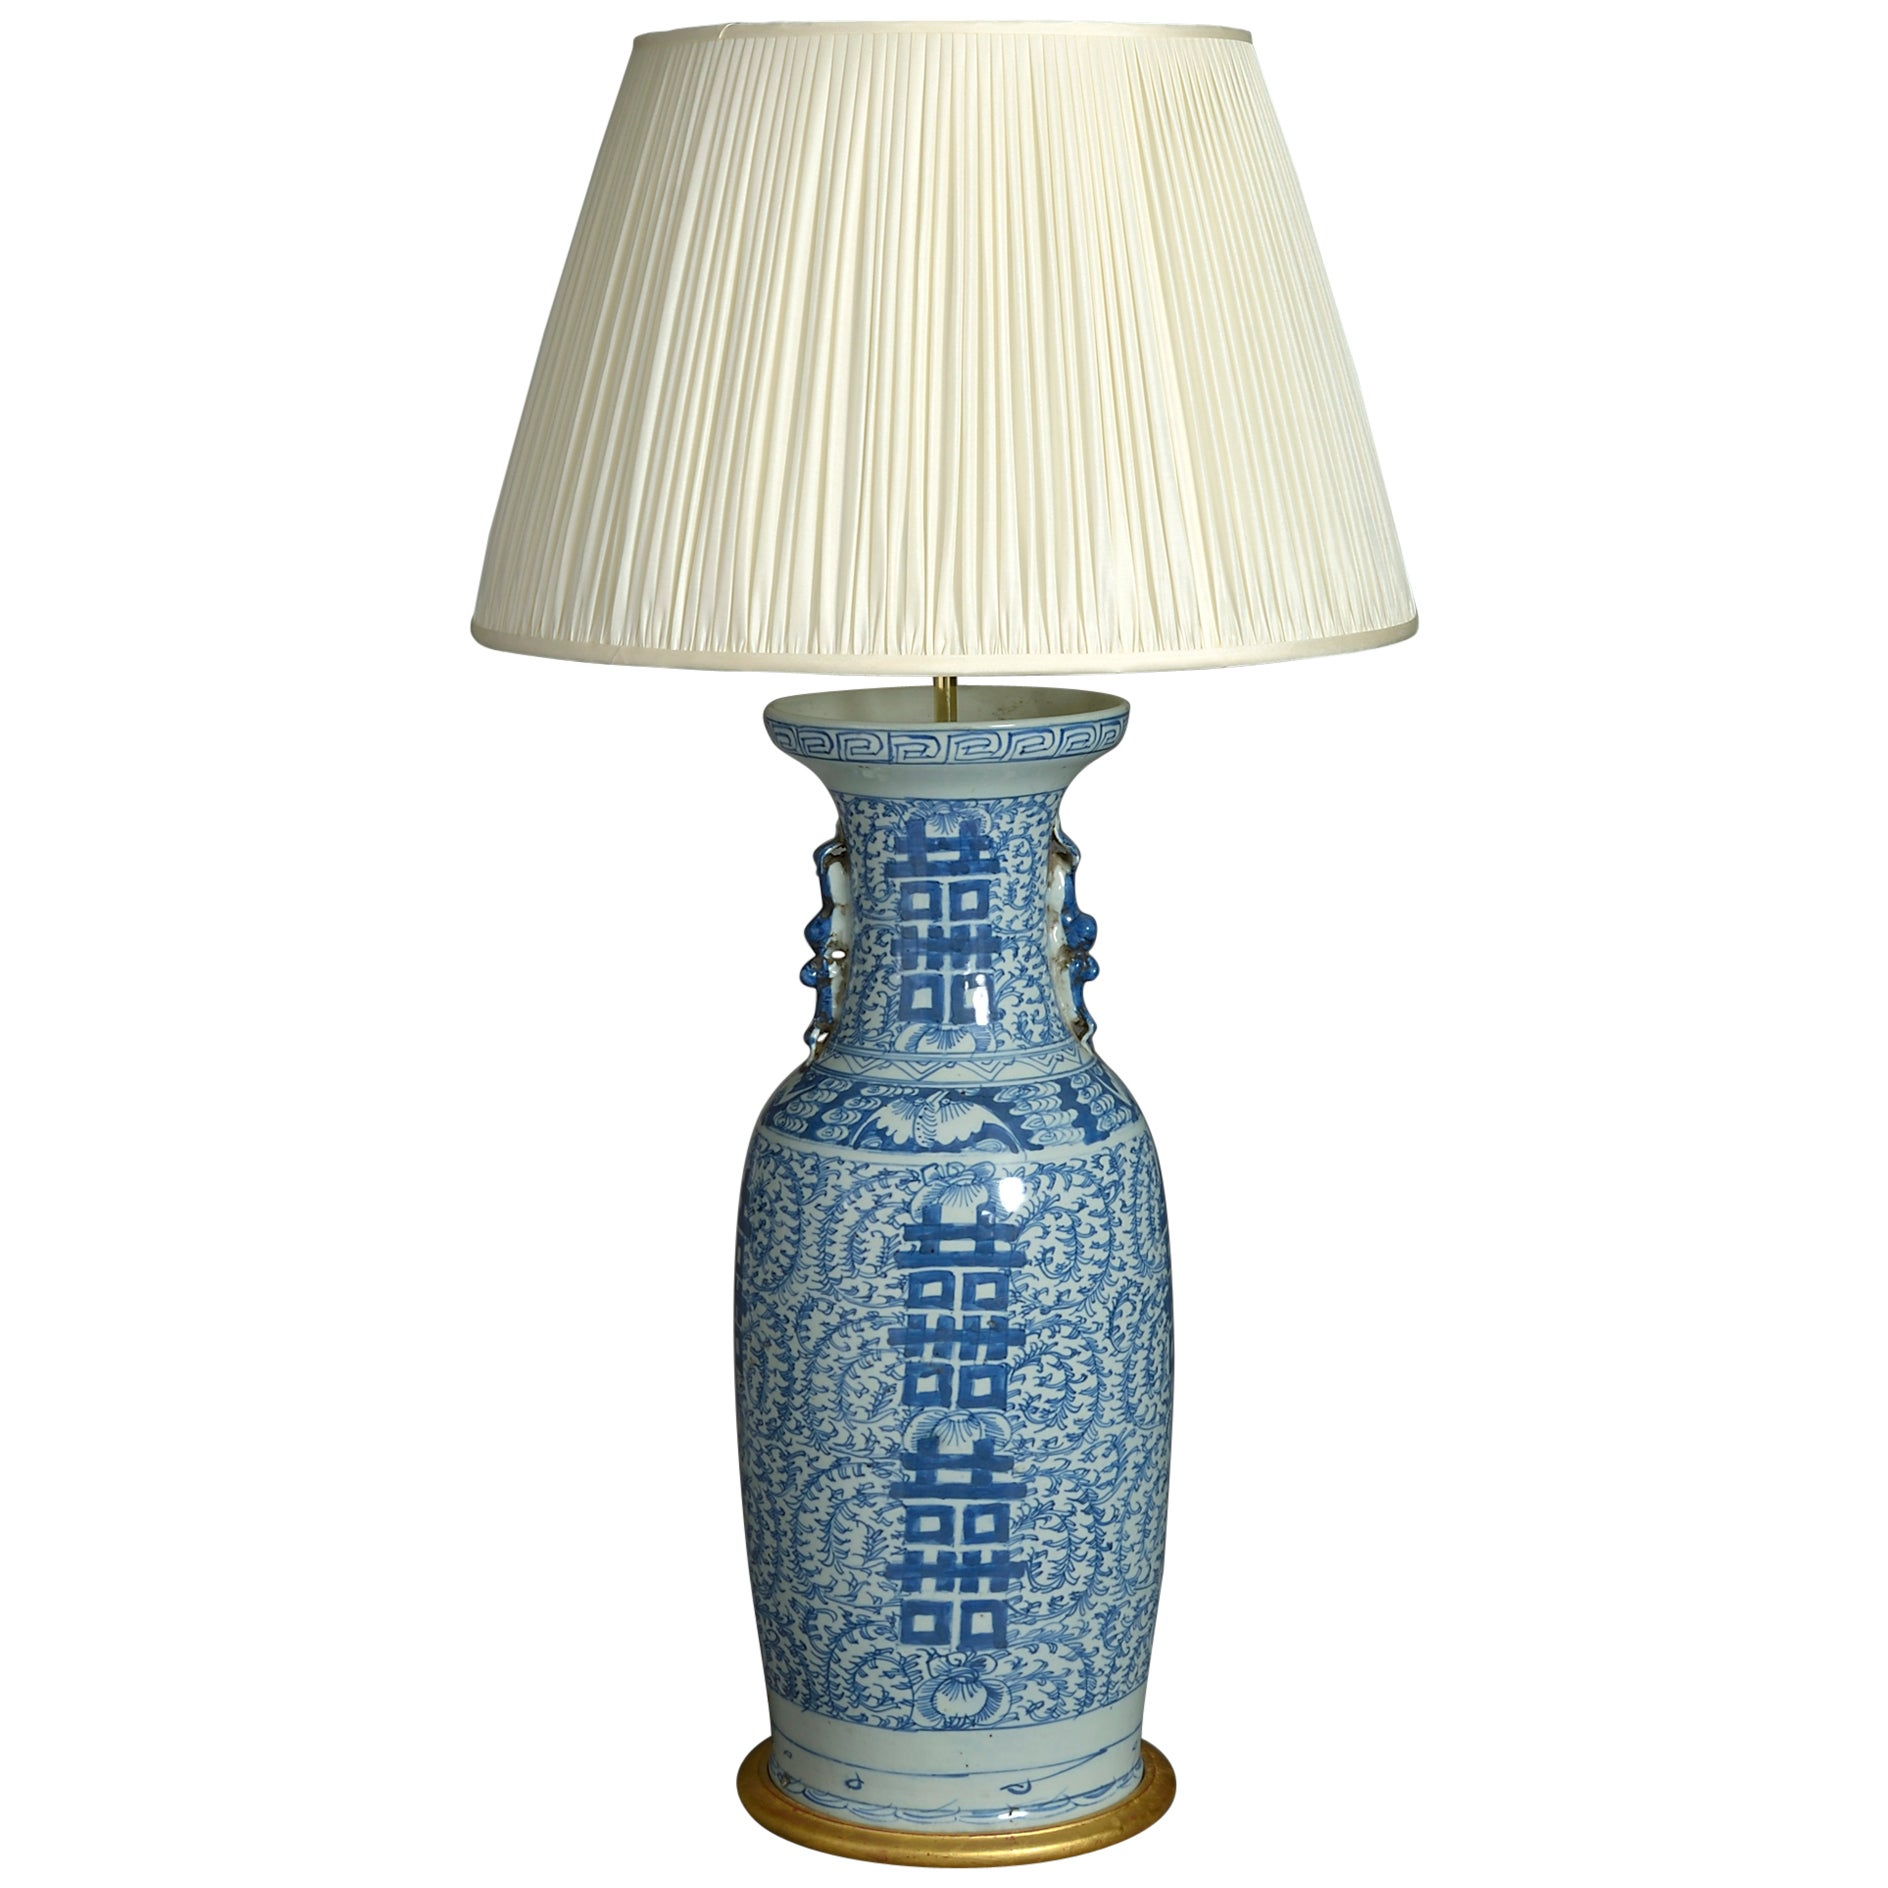 Tall 19th Century Blue and White Porcelain Vase Lamp